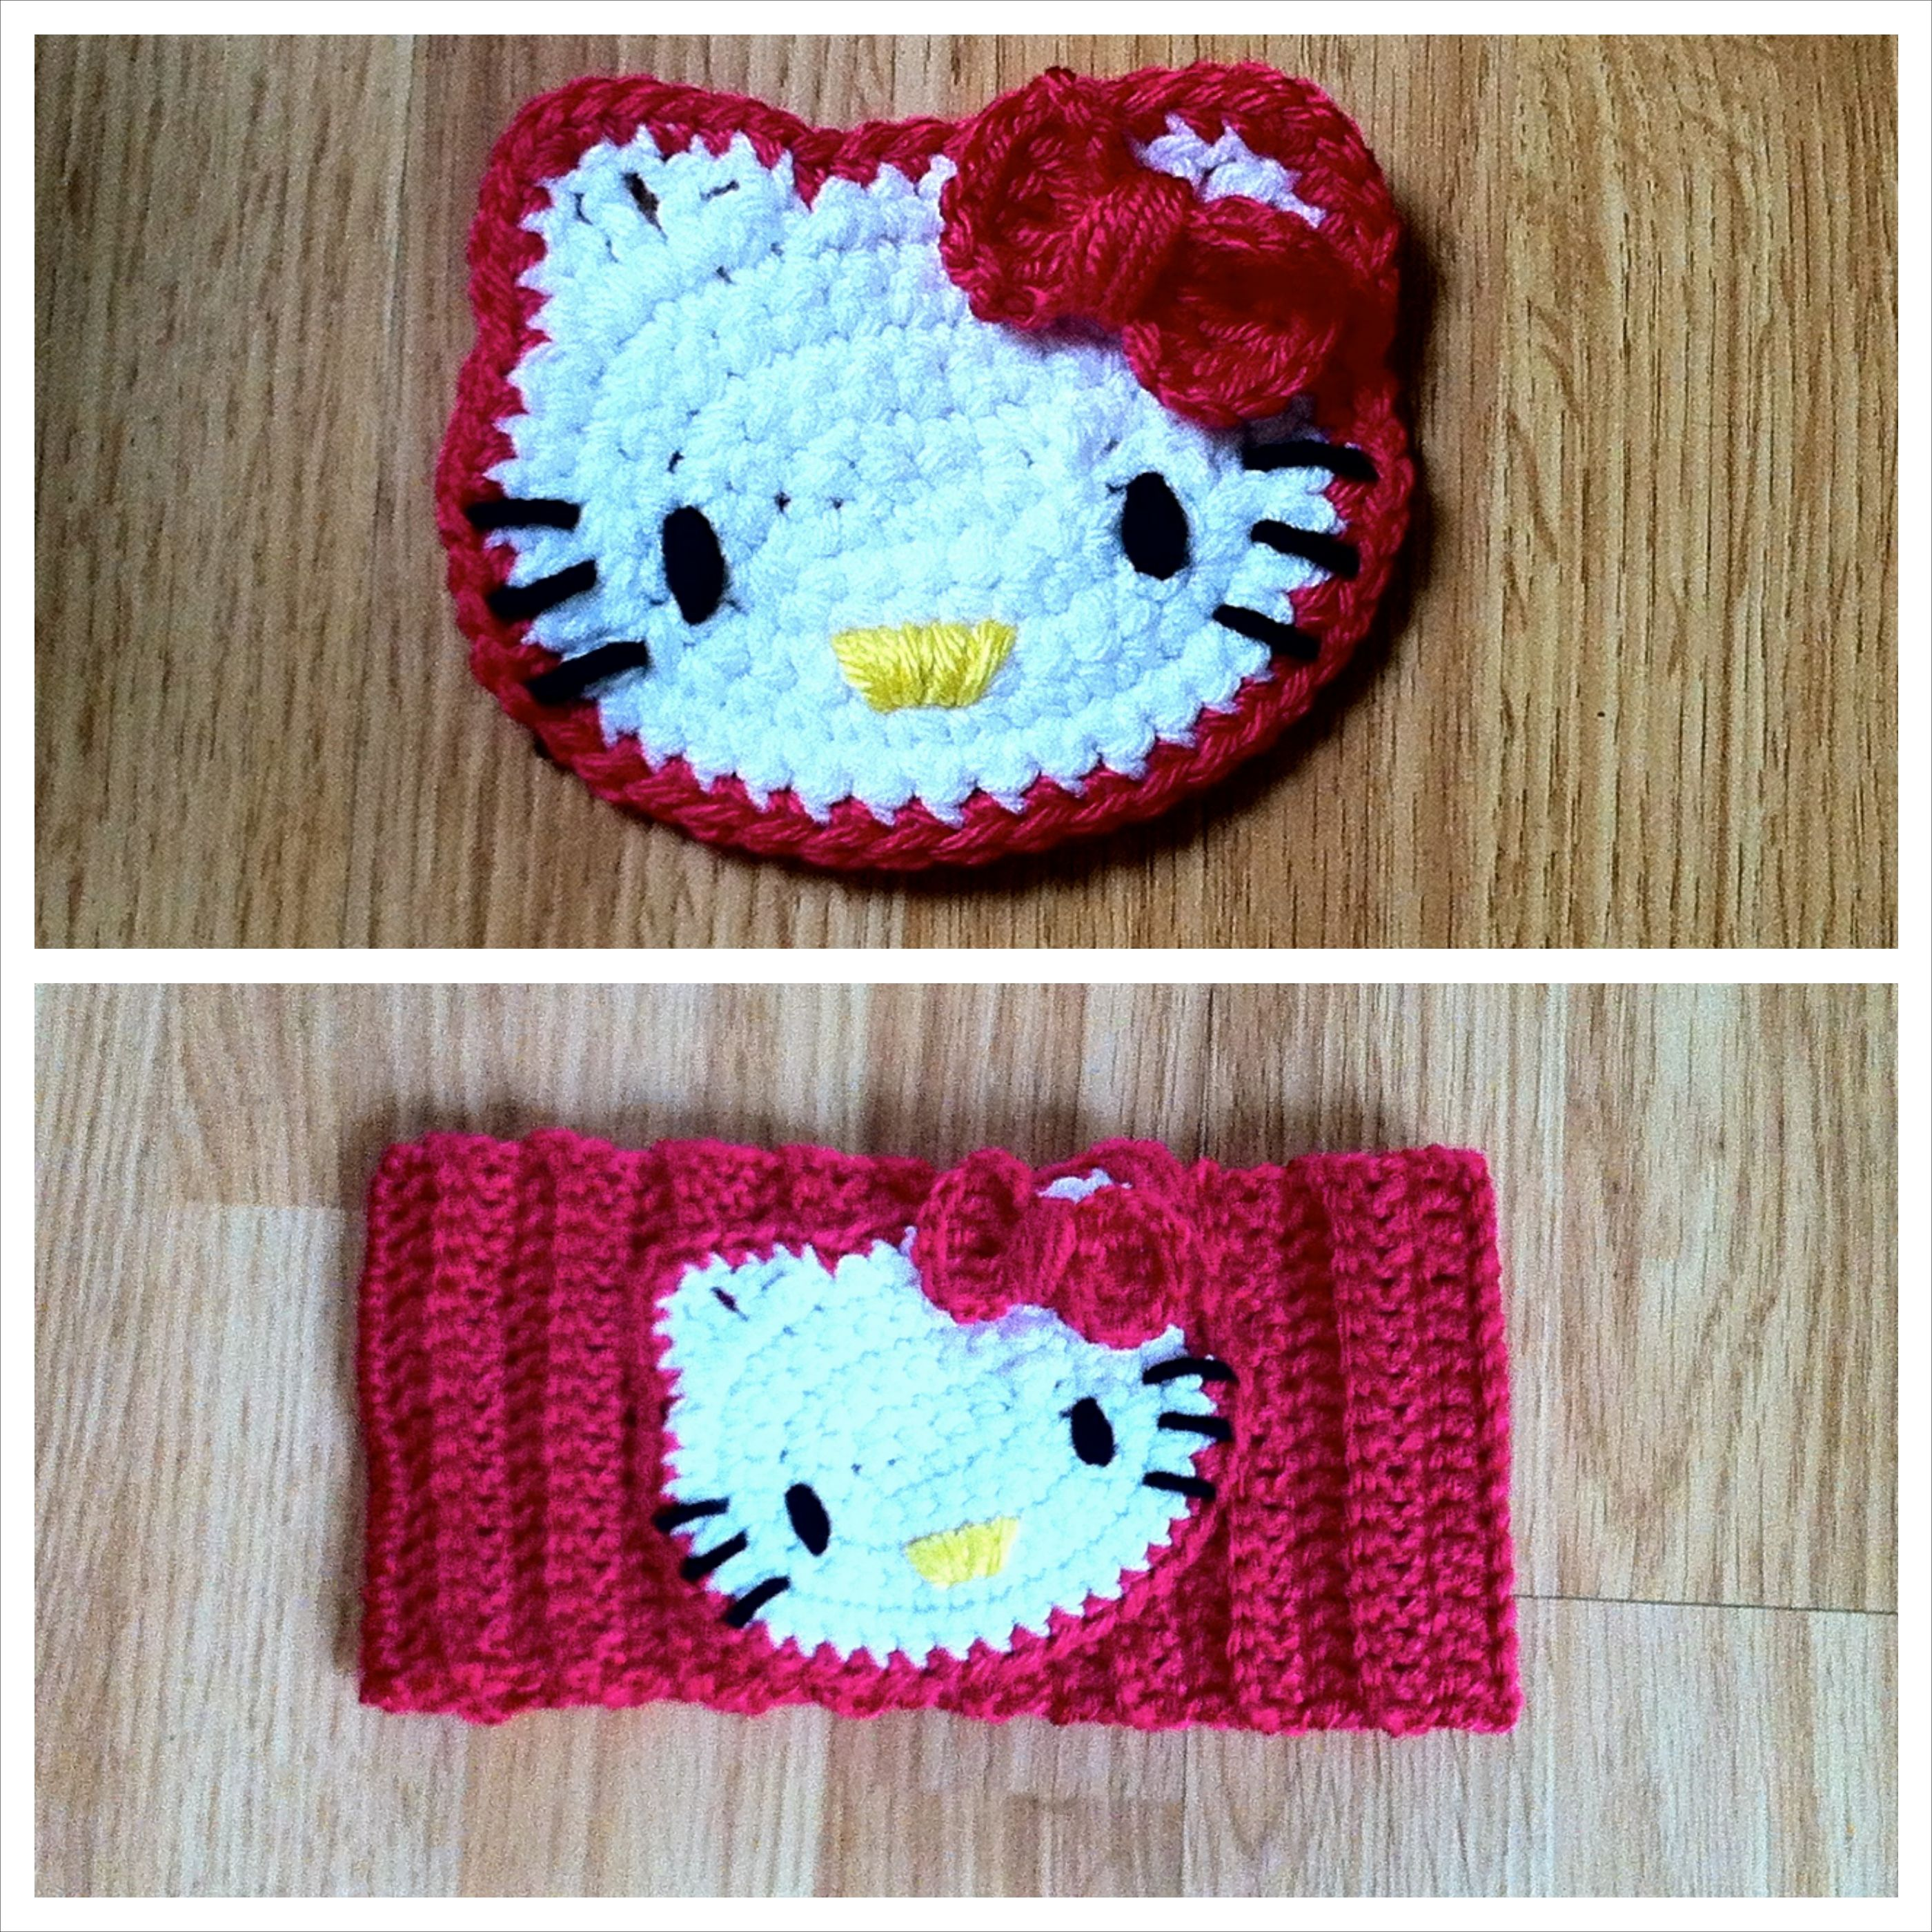 Crochet Hello Kitty Applique/Headband pattern | Crochet Applique ...